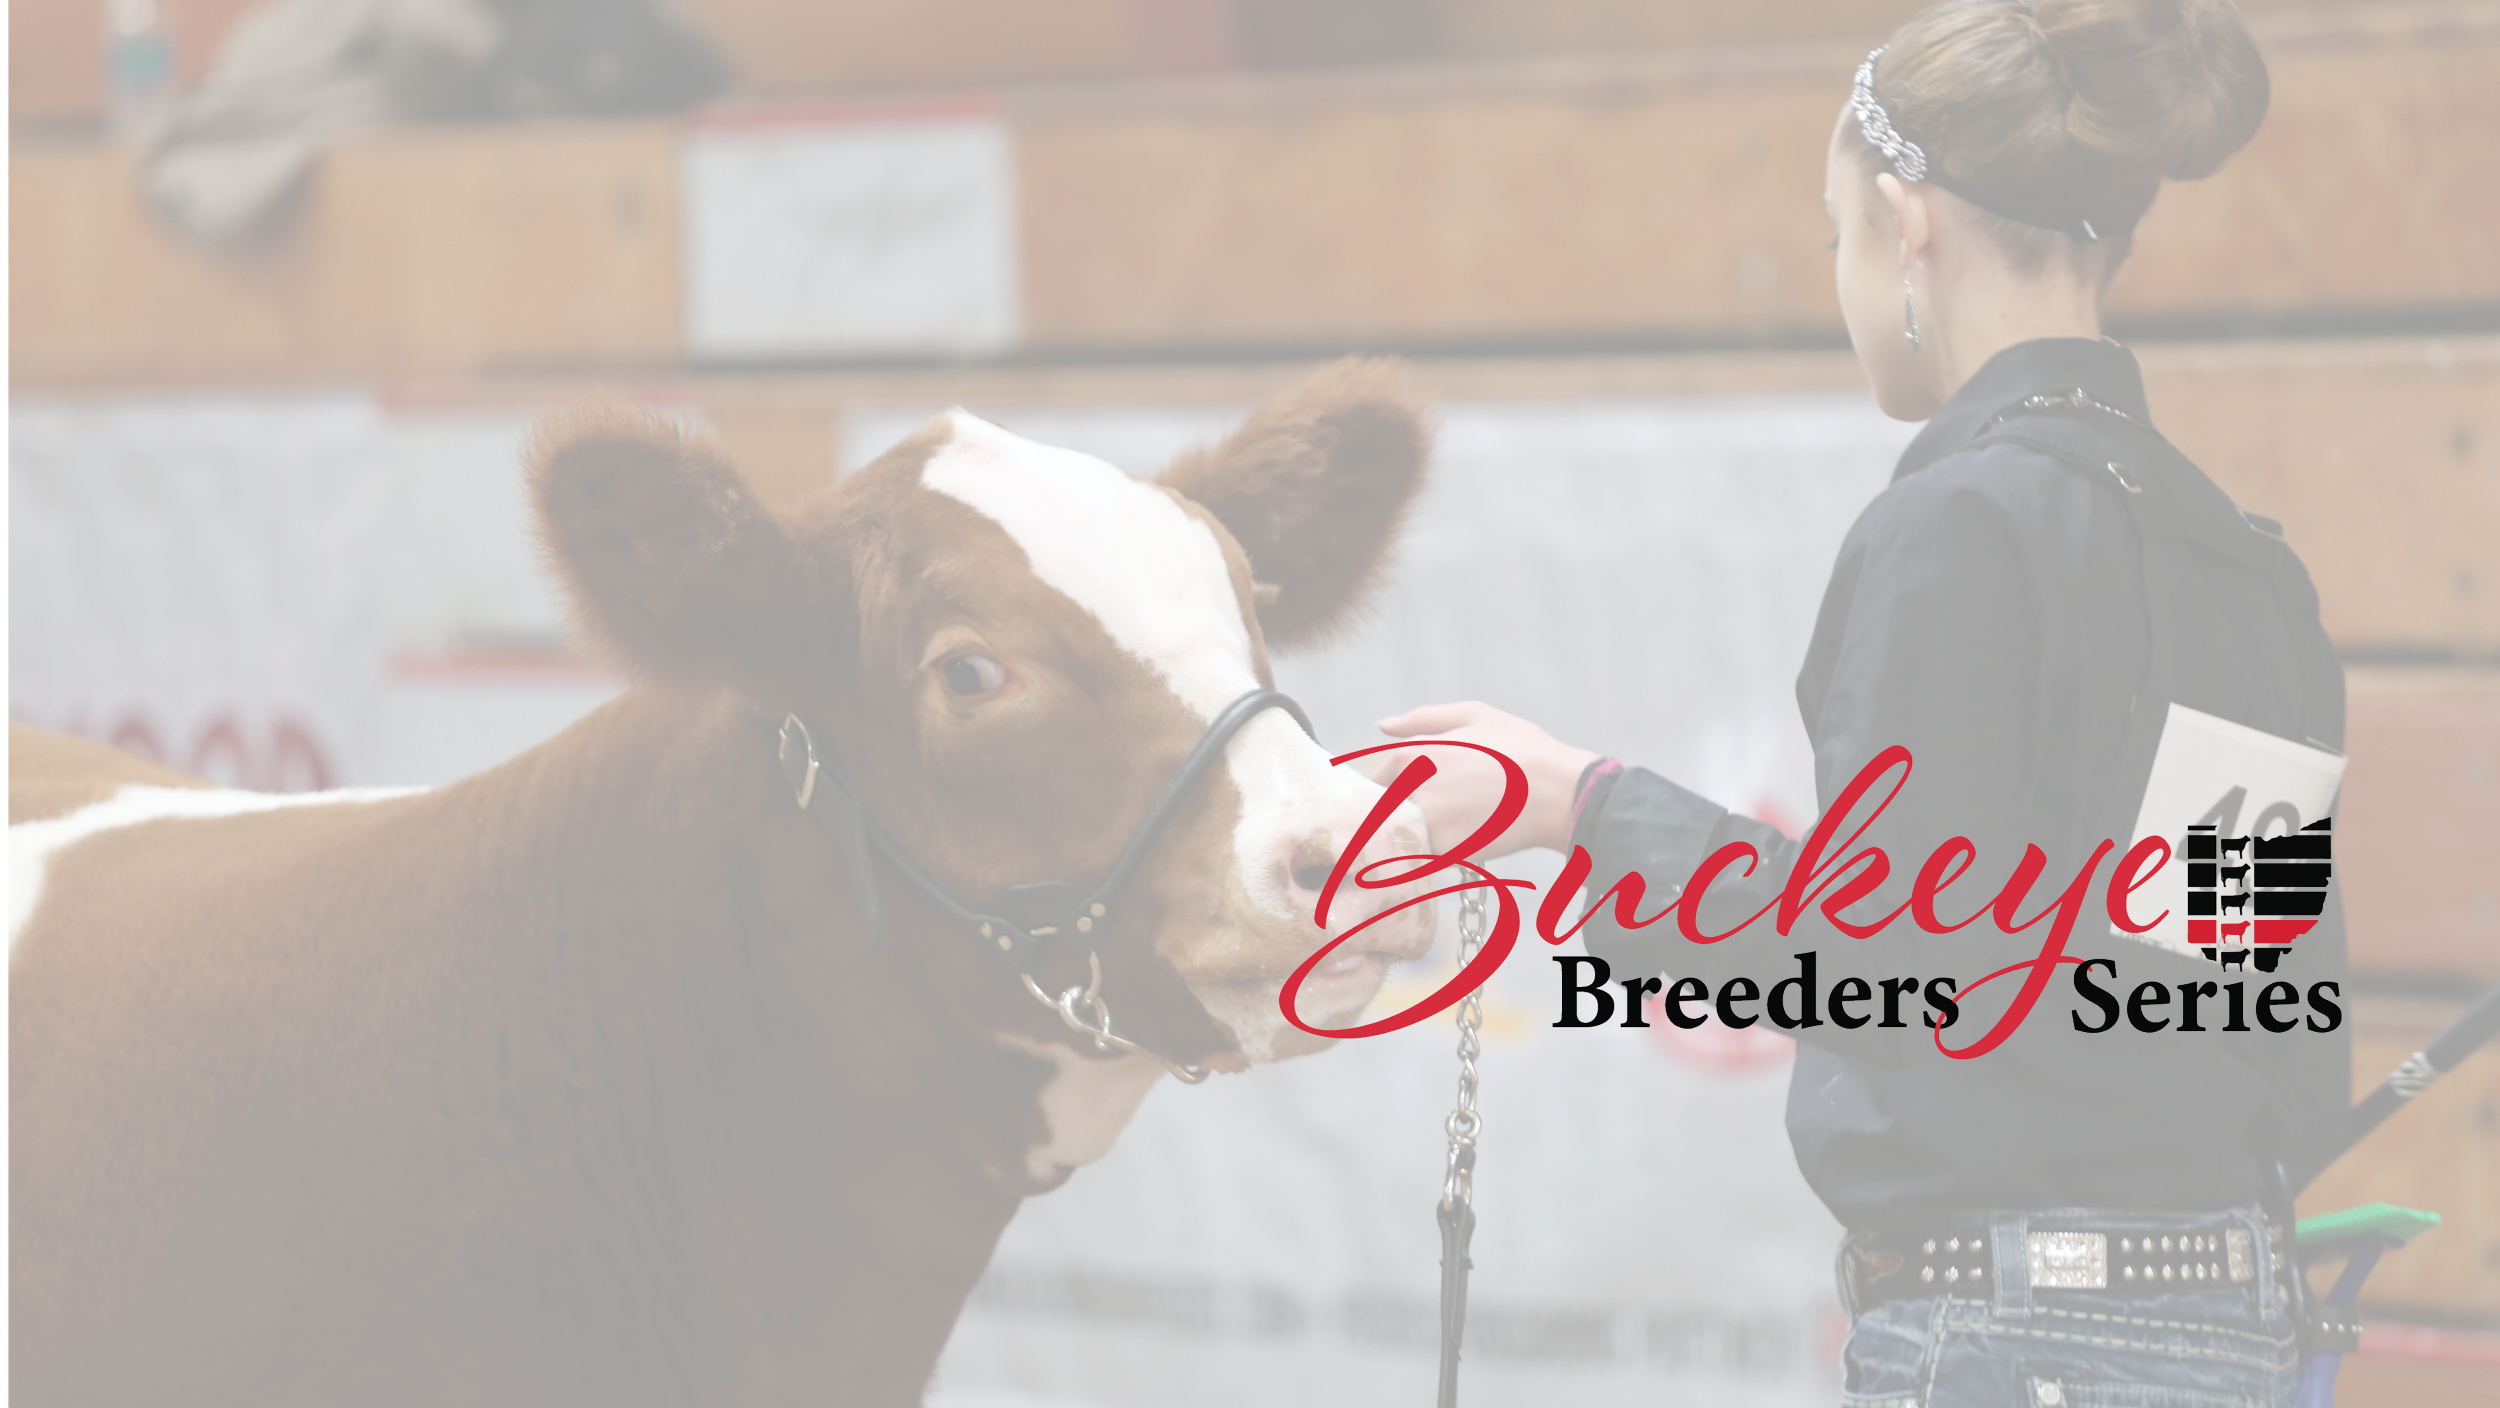 buckeye breeders series header